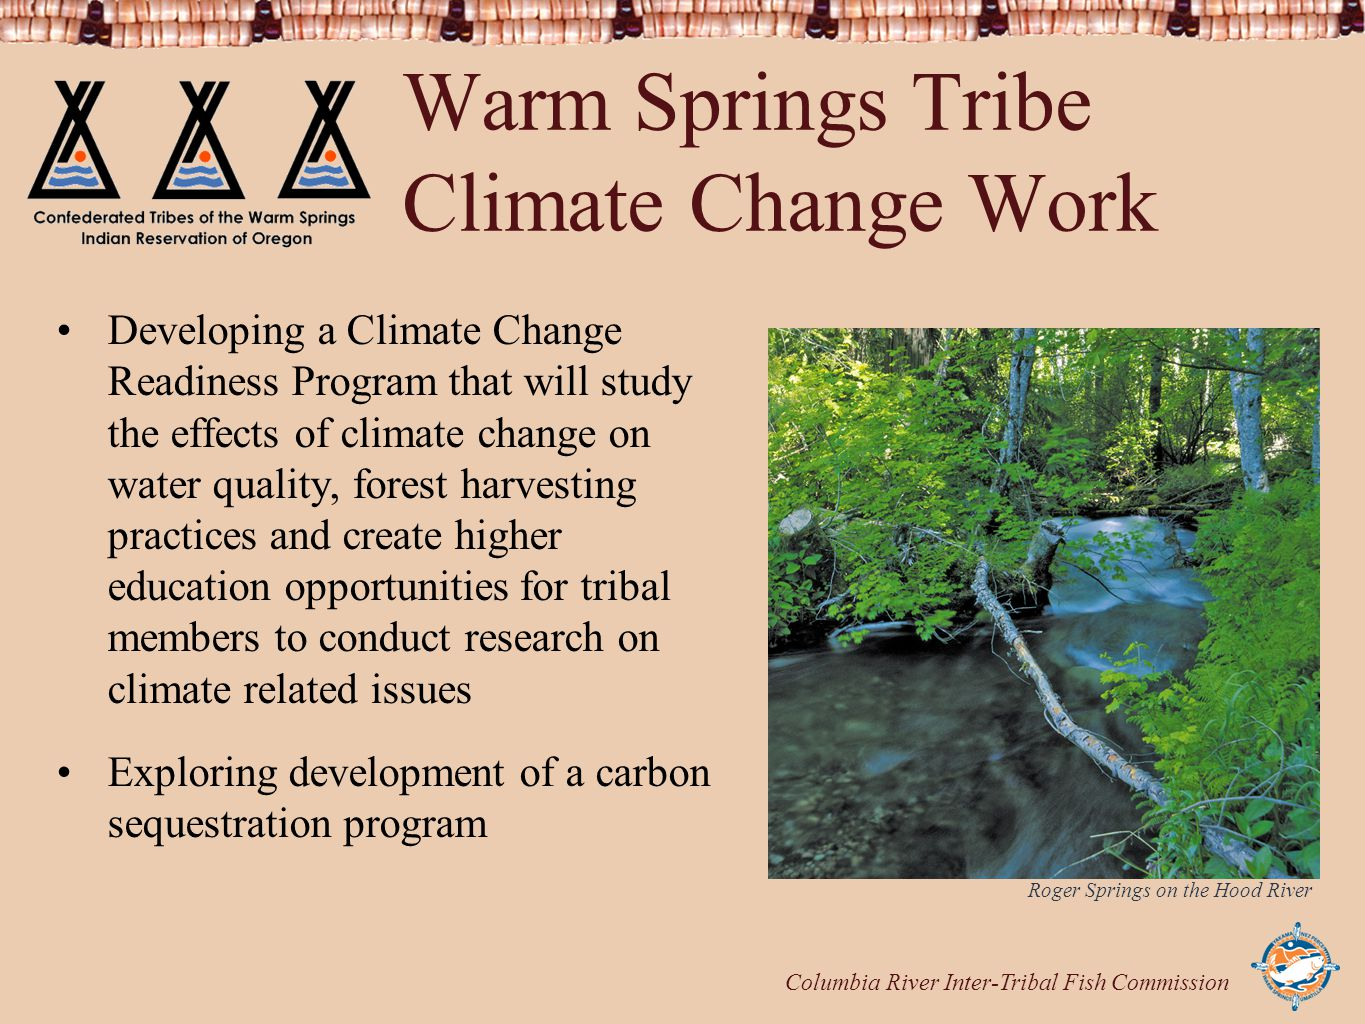 Columbia River Inter-Tribal Fish Commission Warm Springs Tribe Climate Change Work Developing a Climate Change Readiness Program that will study the effects of climate change on water quality, forest harvesting practices and create higher education opportunities for tribal members to conduct research on climate related issues Exploring development of a carbon sequestration program Roger Springs on the Hood River